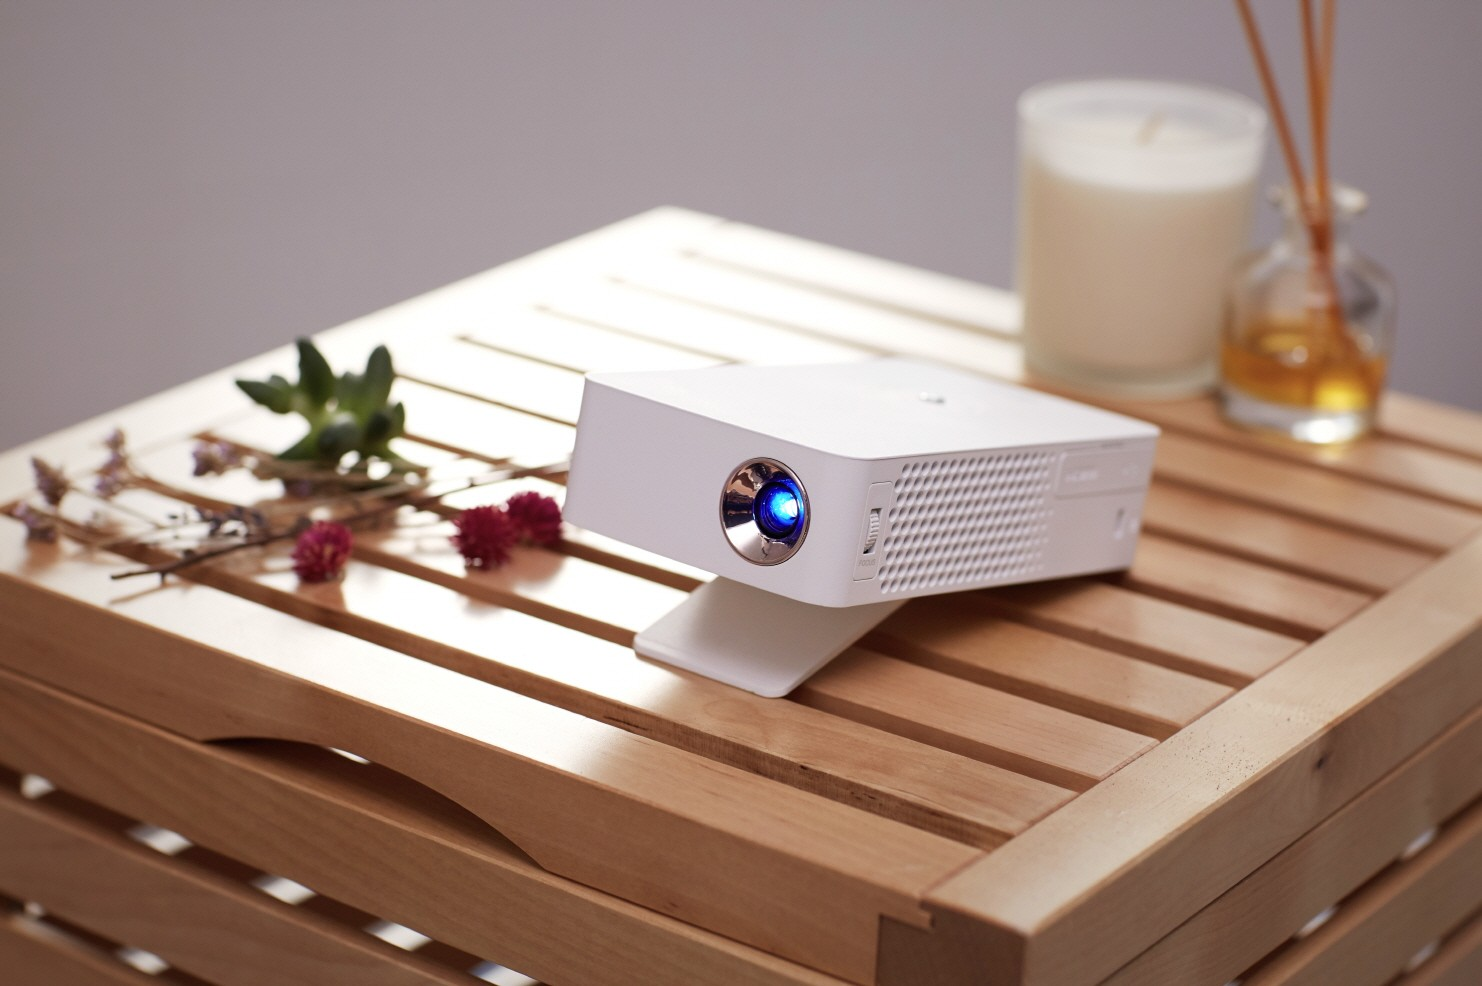 A close-up view of the LG MiniBeam Projector PH30J